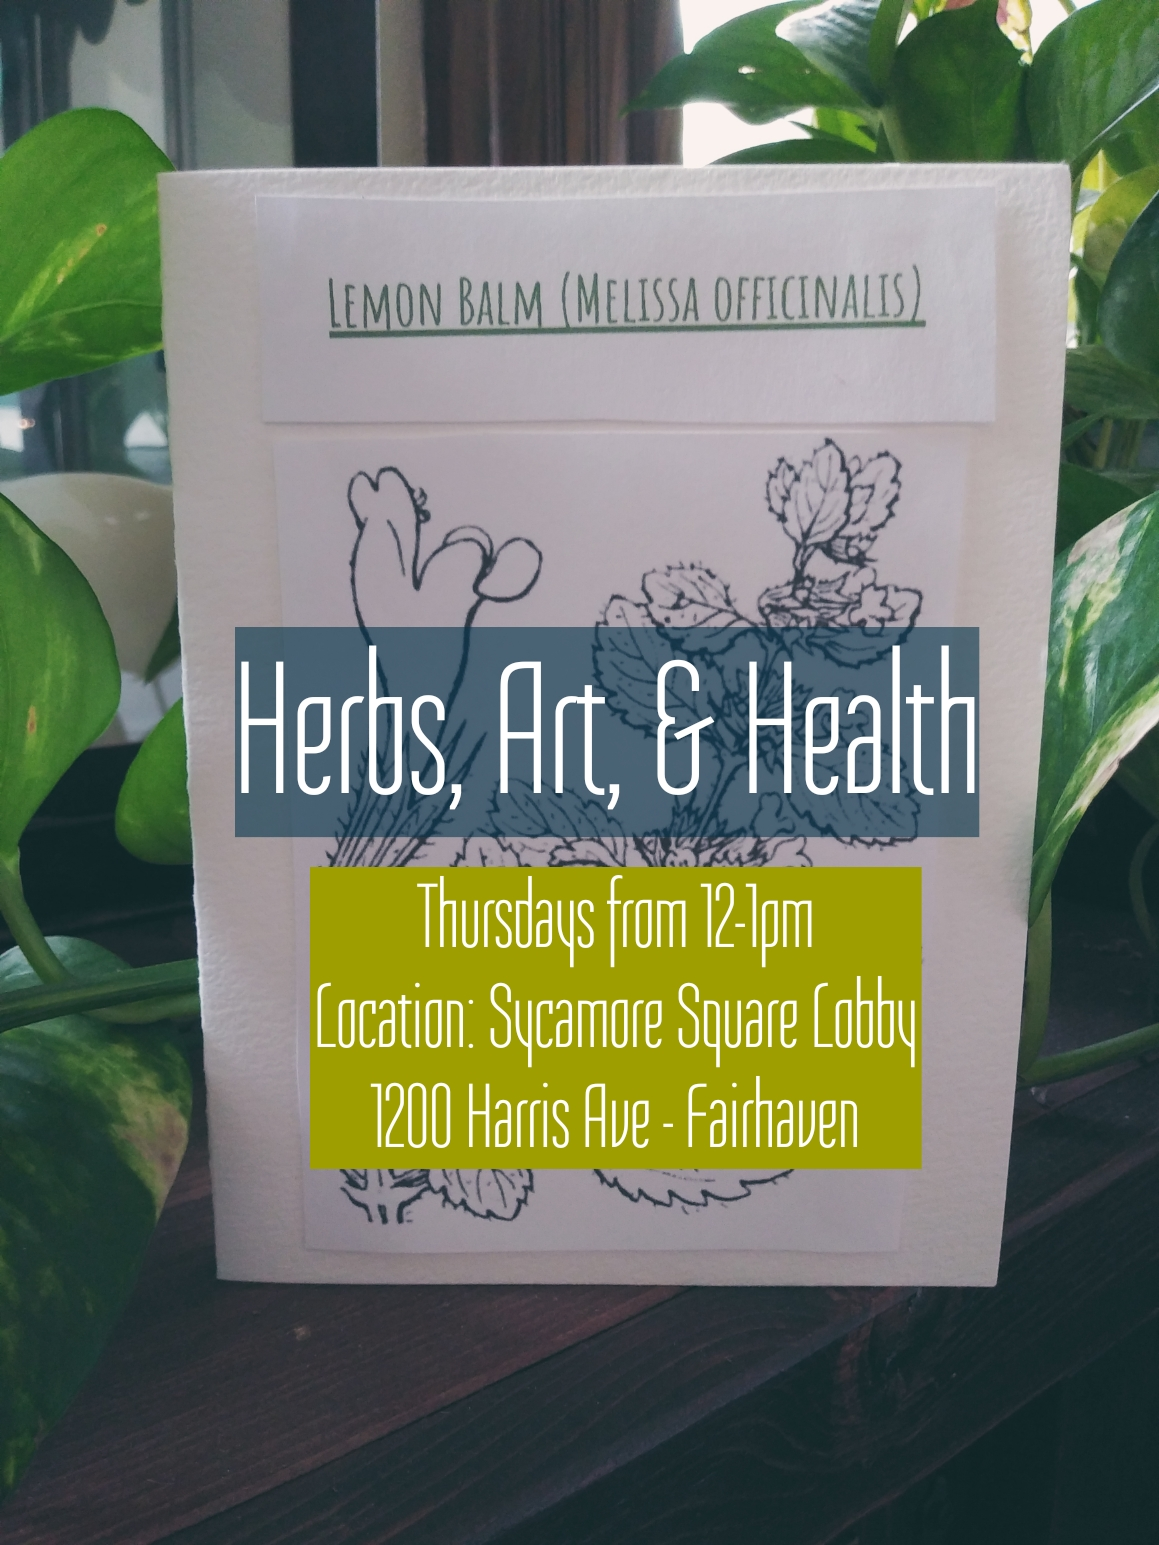 Join Dr. Carrie Wine each Thursday from 12 - 1 pm this summer to talk about medicinal herbs!